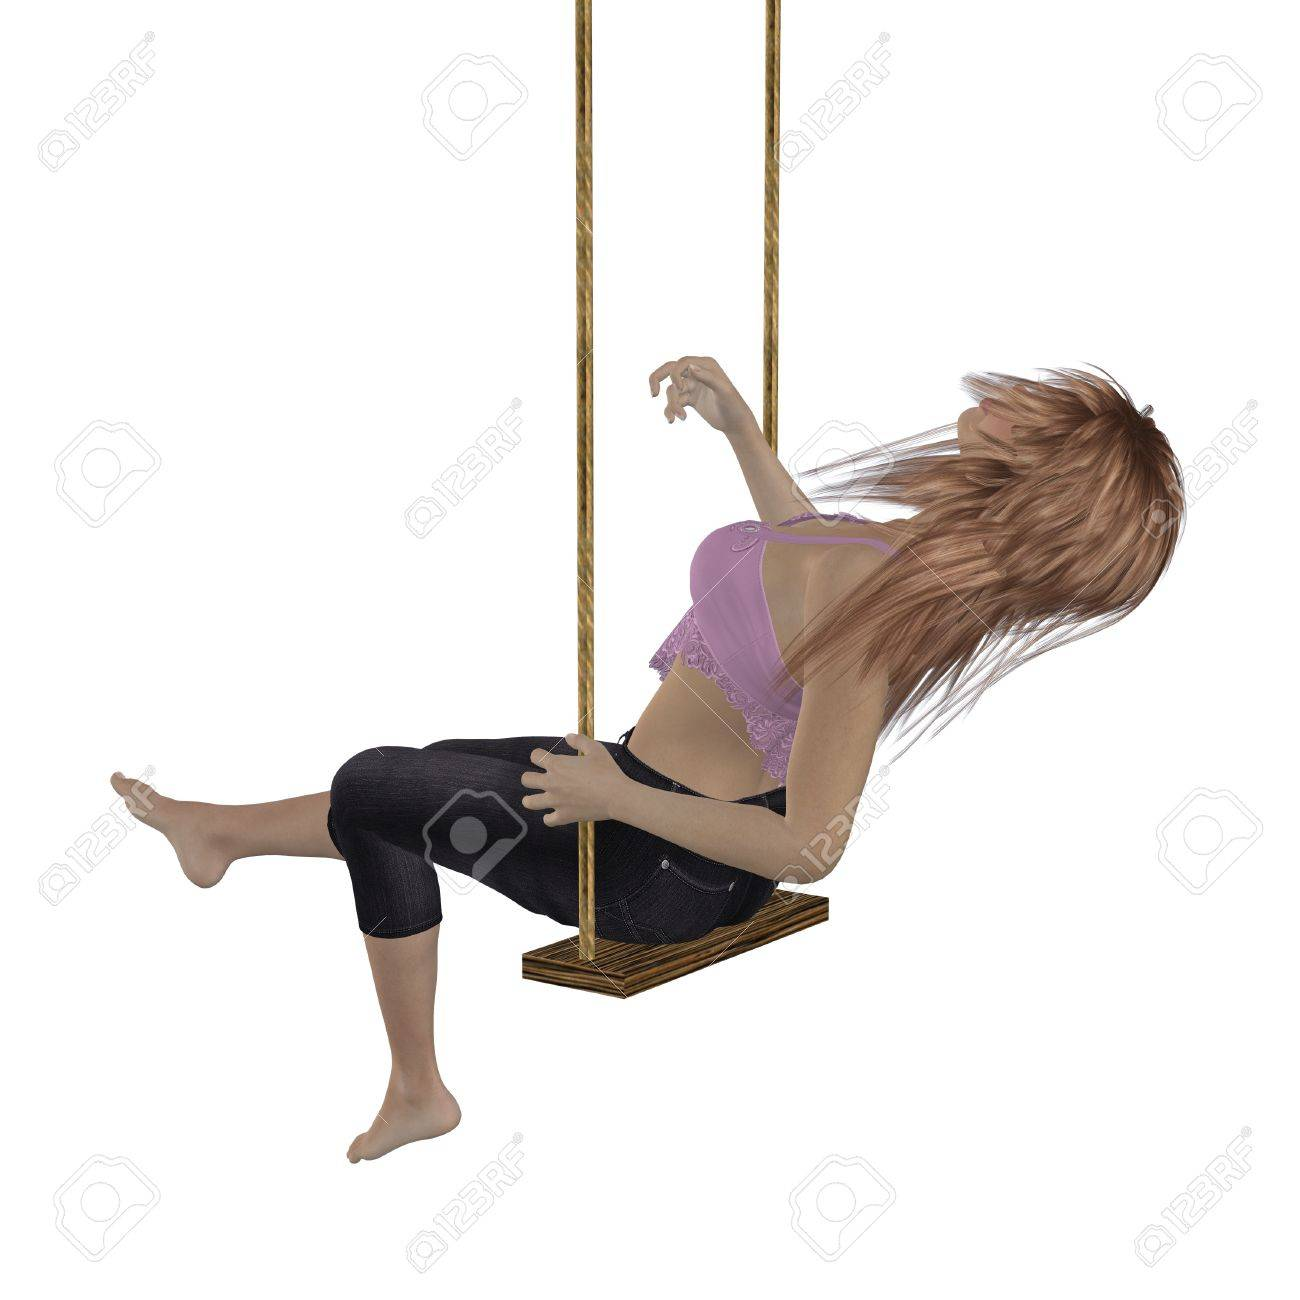 Digitally rendered image of a woman in pink top on swing over white background. Stock Photo - 18874663